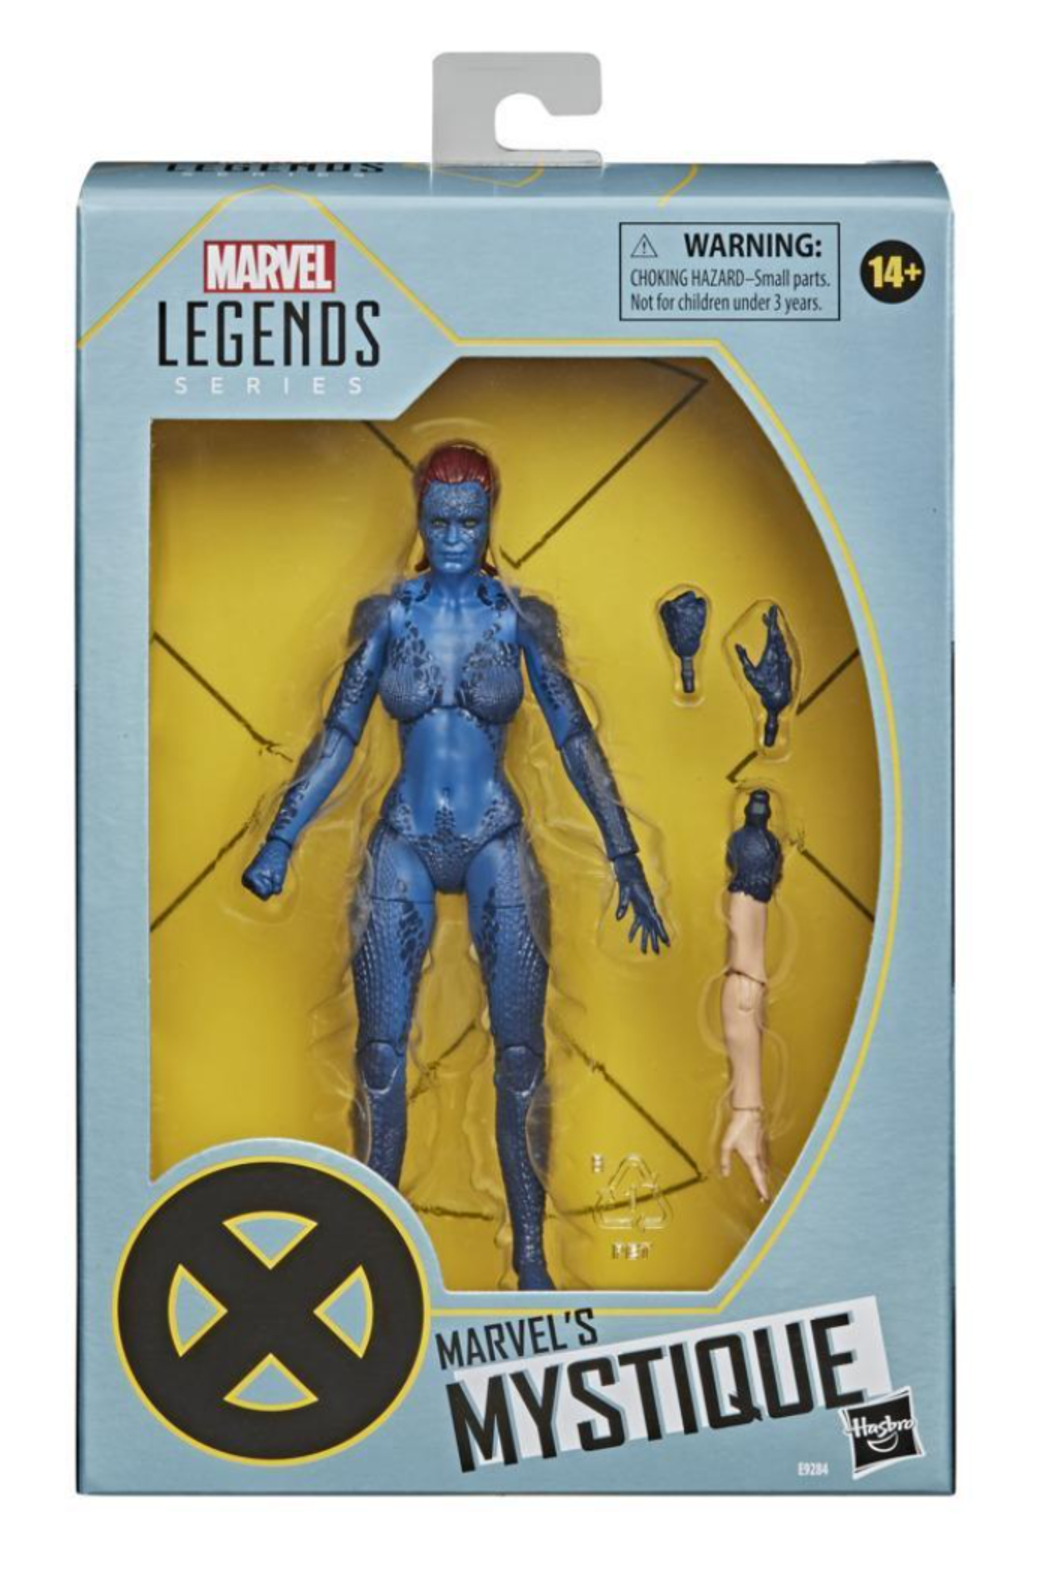 Hasbro Marvel Legends Series X-Men 6-inch Collectible Marvel's Mystique Action Figure Toy, Ages 14 And Up - Main Image